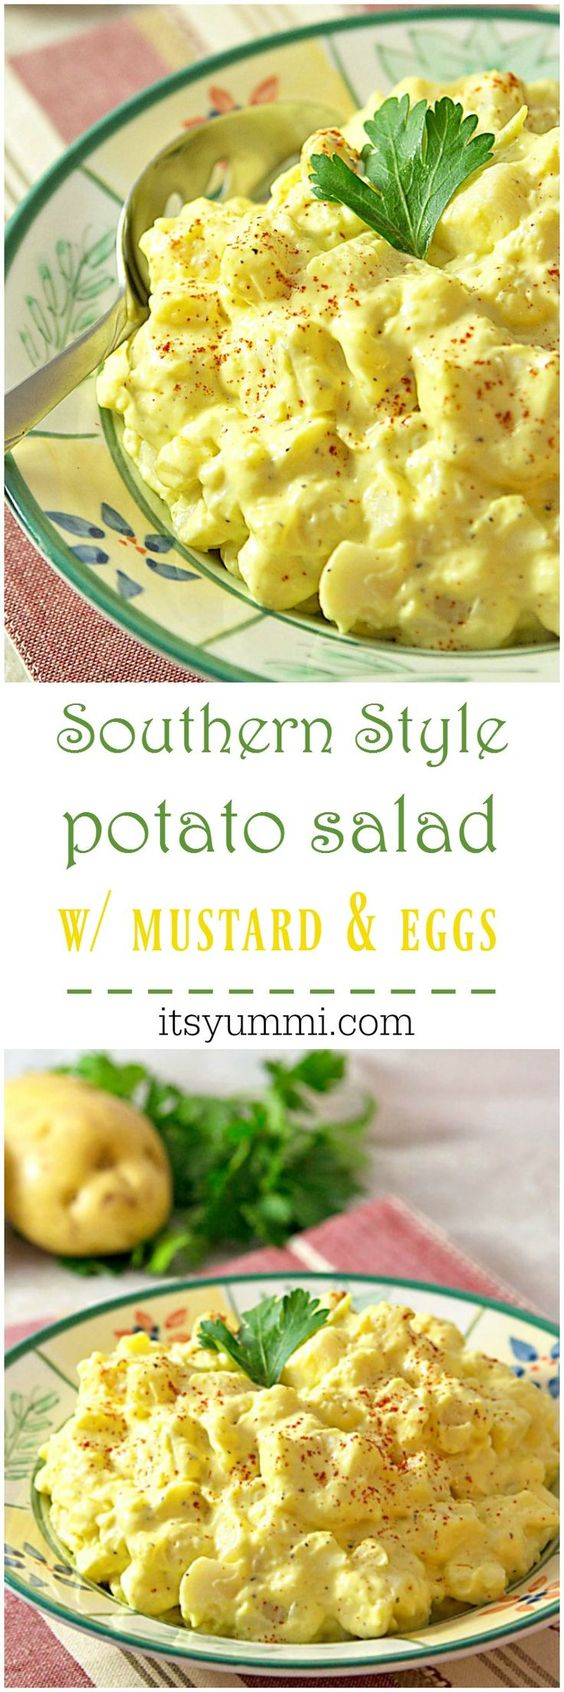 Southern Style Mustard Potato Salad with Egg - A true classic!